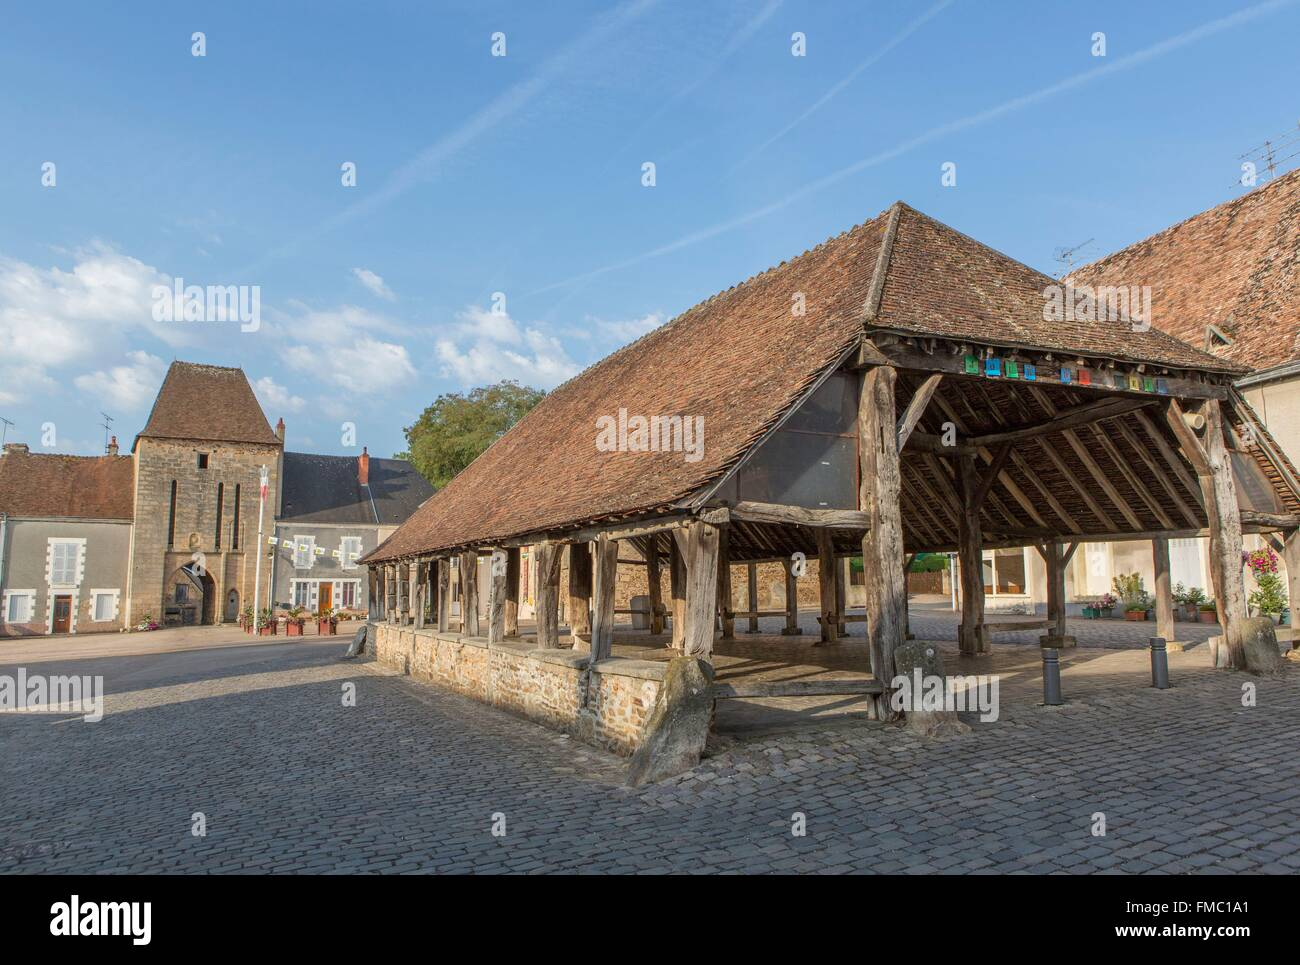 France, Indre, Sainte Severe sur Indre, filming location of Jour de Fete directed by Jacques Tati - Stock Image